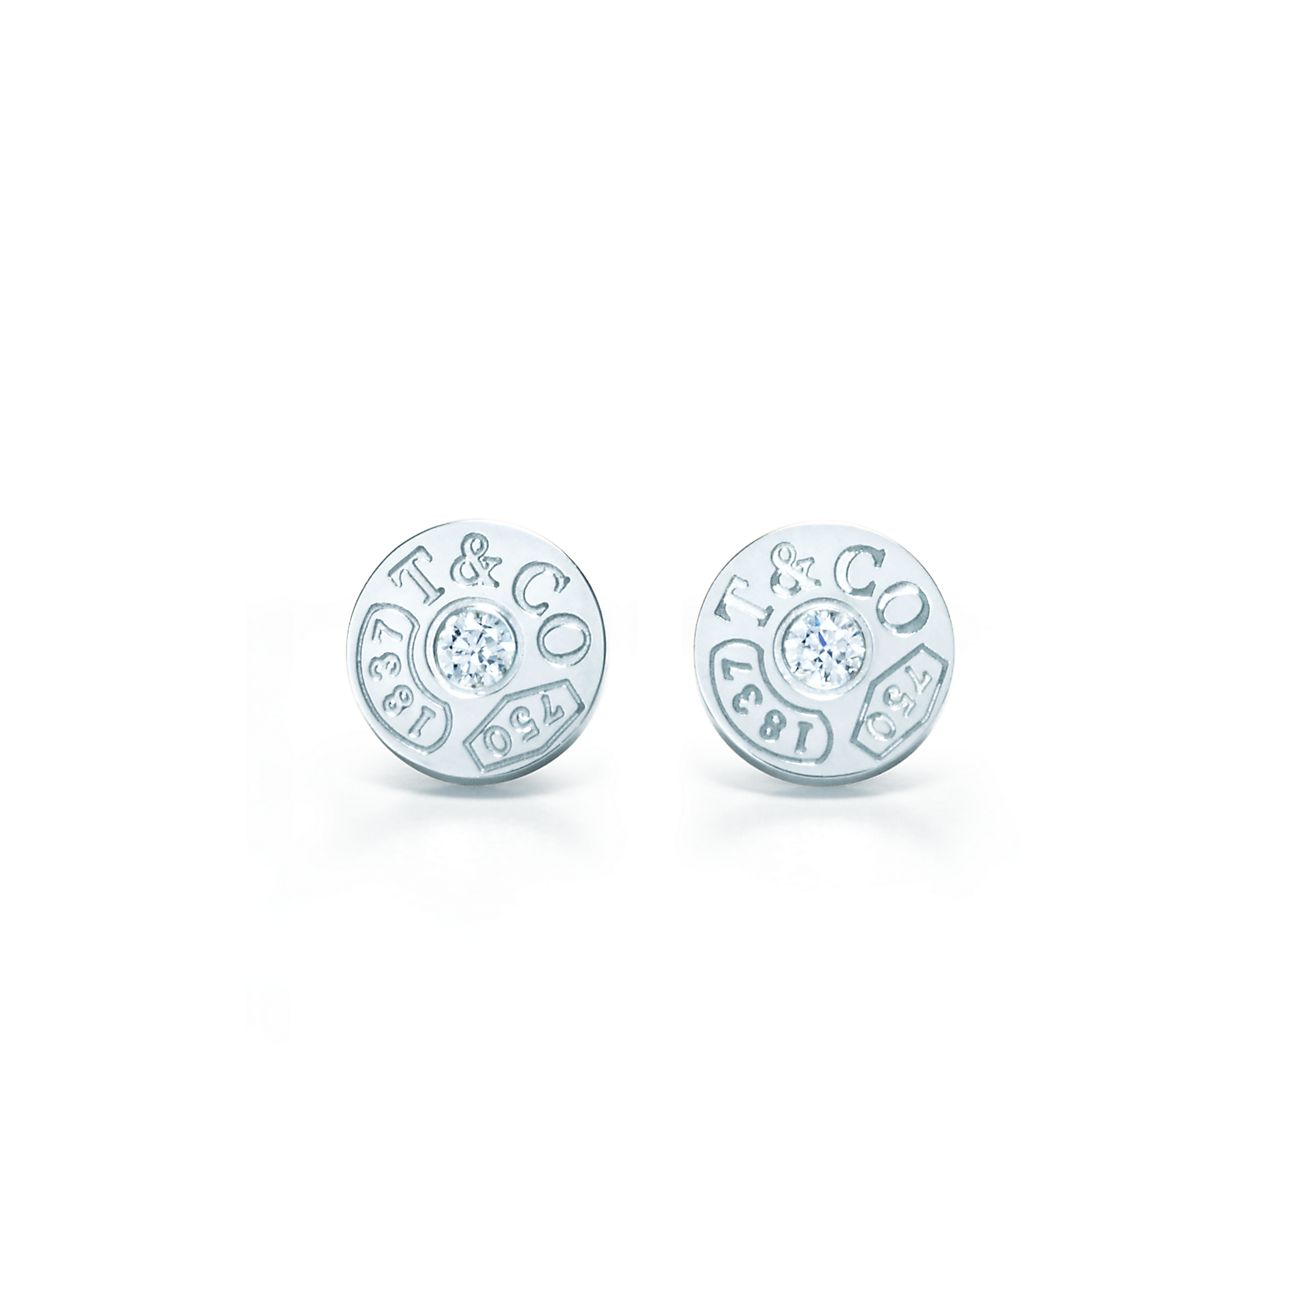 Tiffany 1837 Circle Earrings